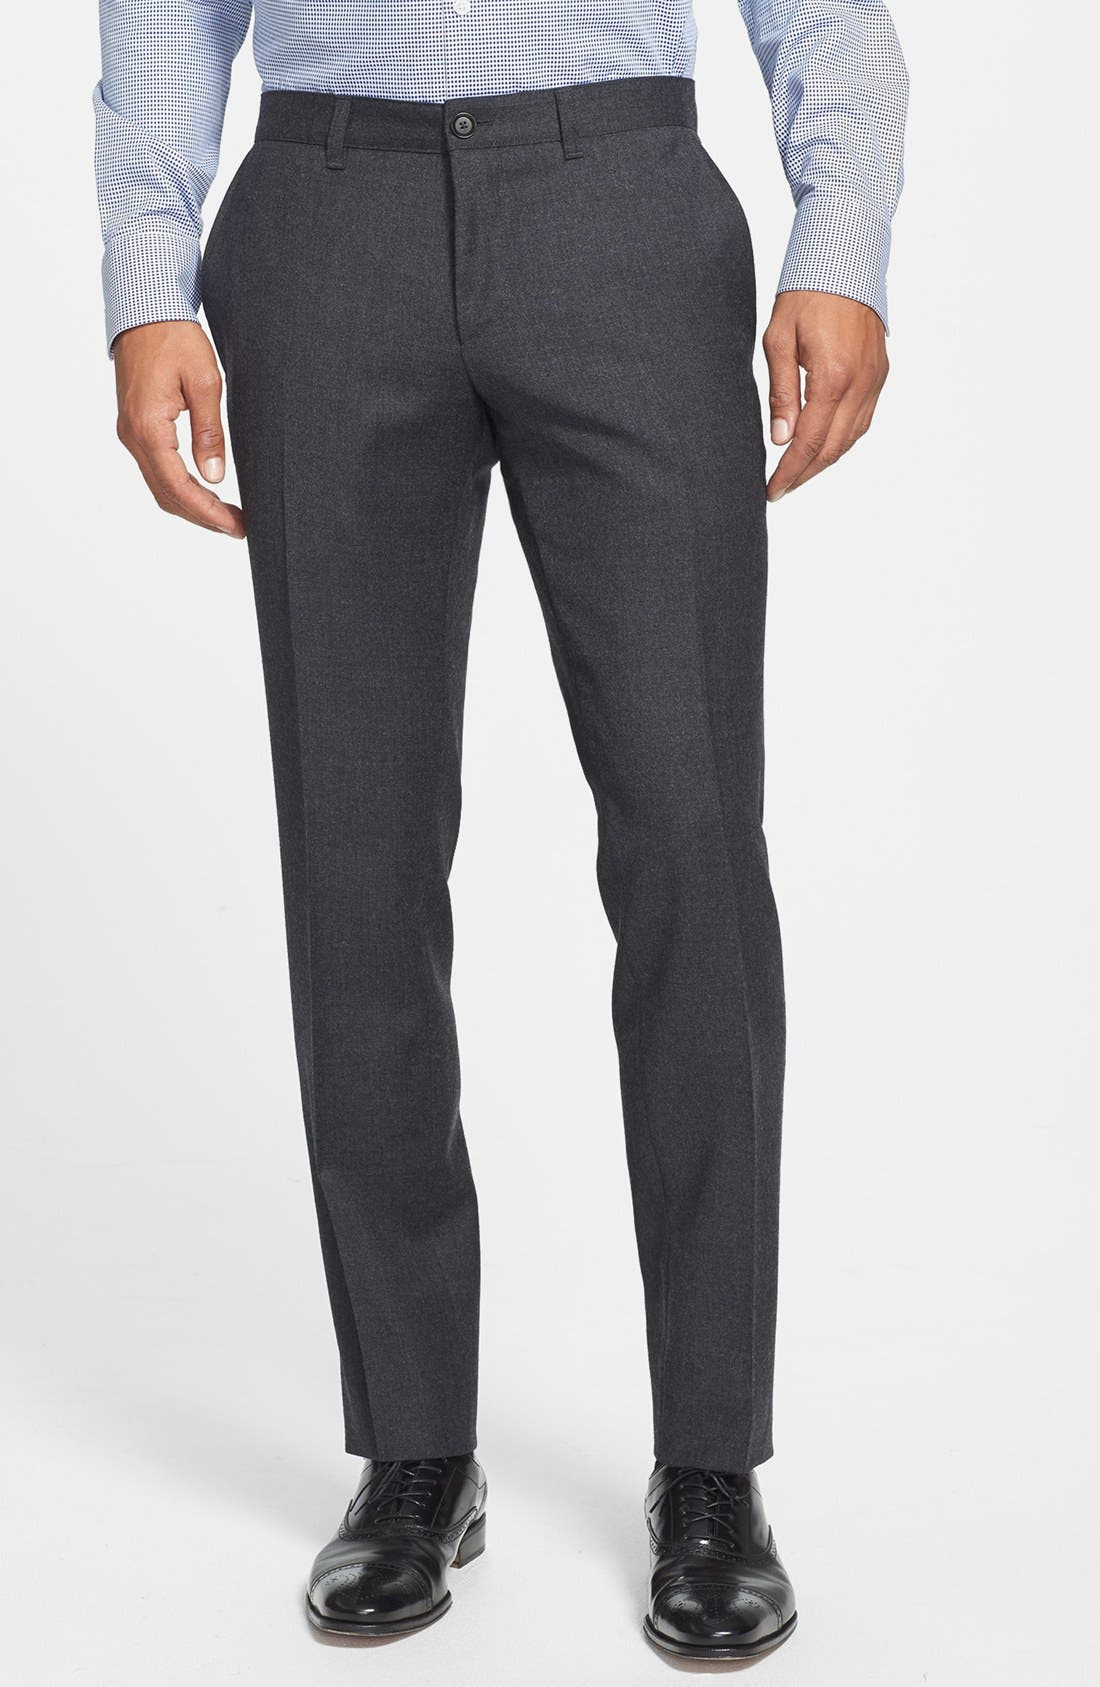 Alternate Image 1 Selected - BOSS HUGO BOSS 'Winng' Flat Front Trousers (Online Only)